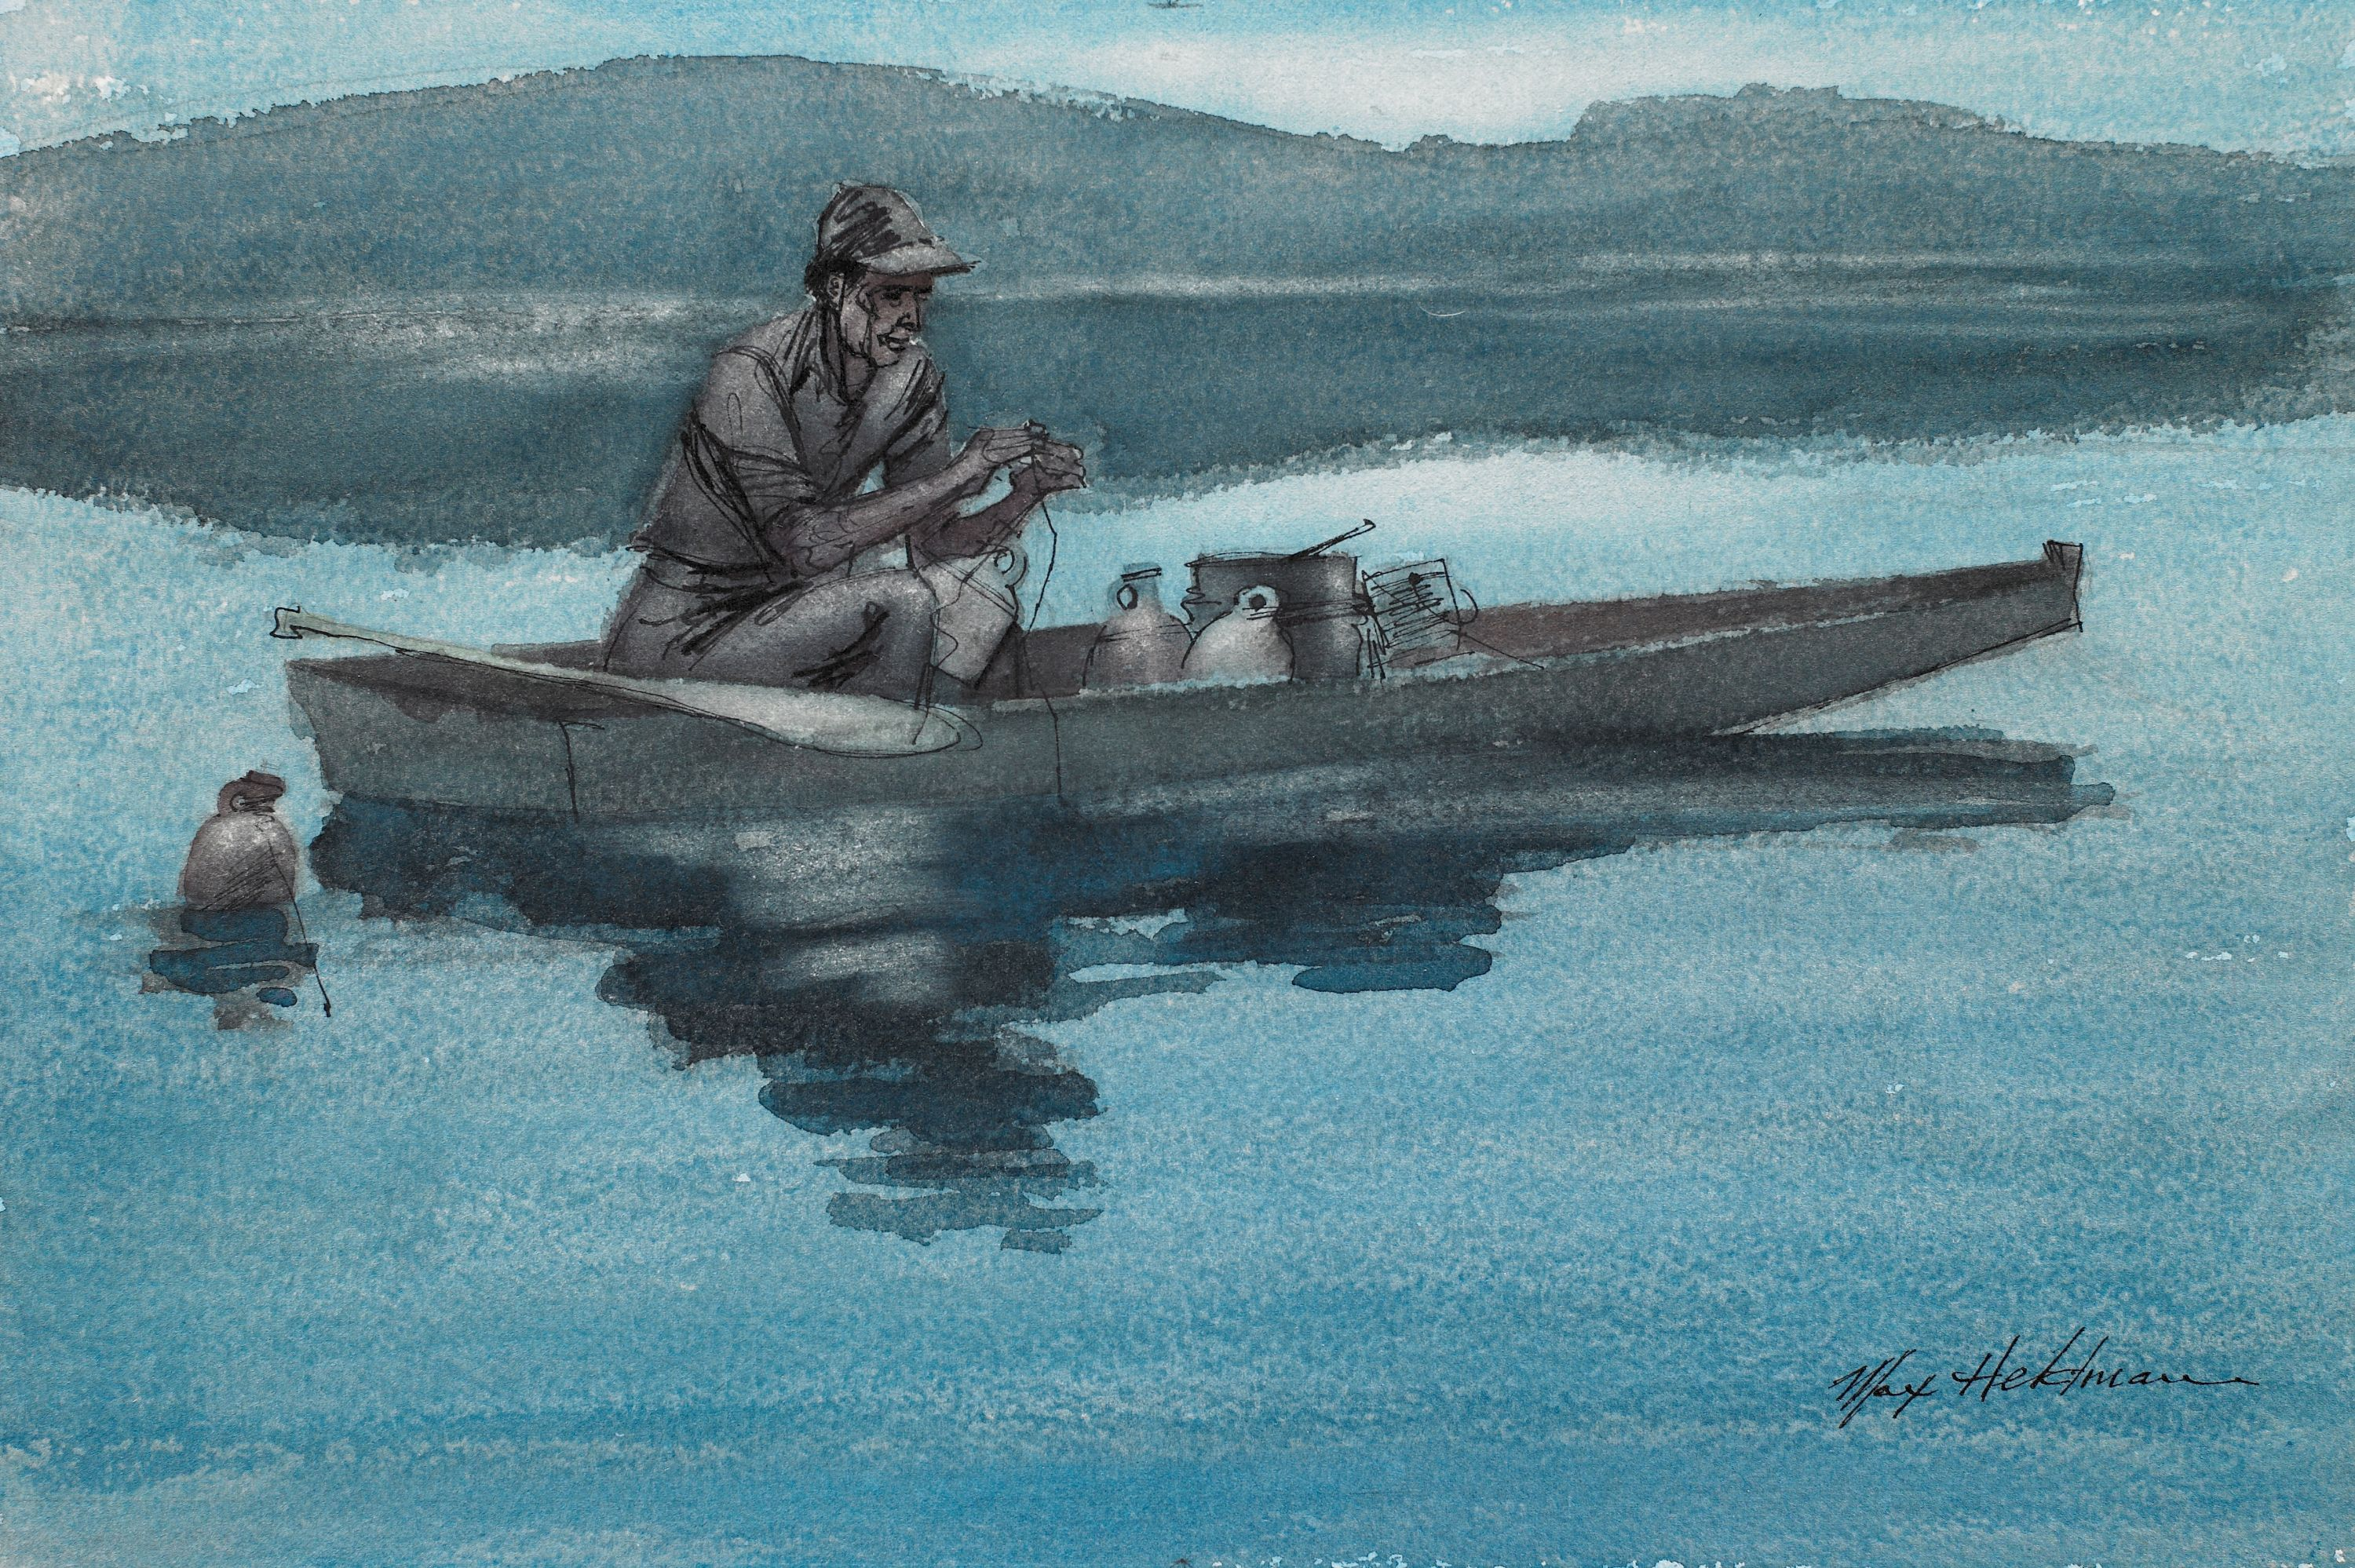 """Jug Fisherman"" Max Heldman, United States, born Russia. Watercolor on paperboard. BMA Colleciton 1982.123."